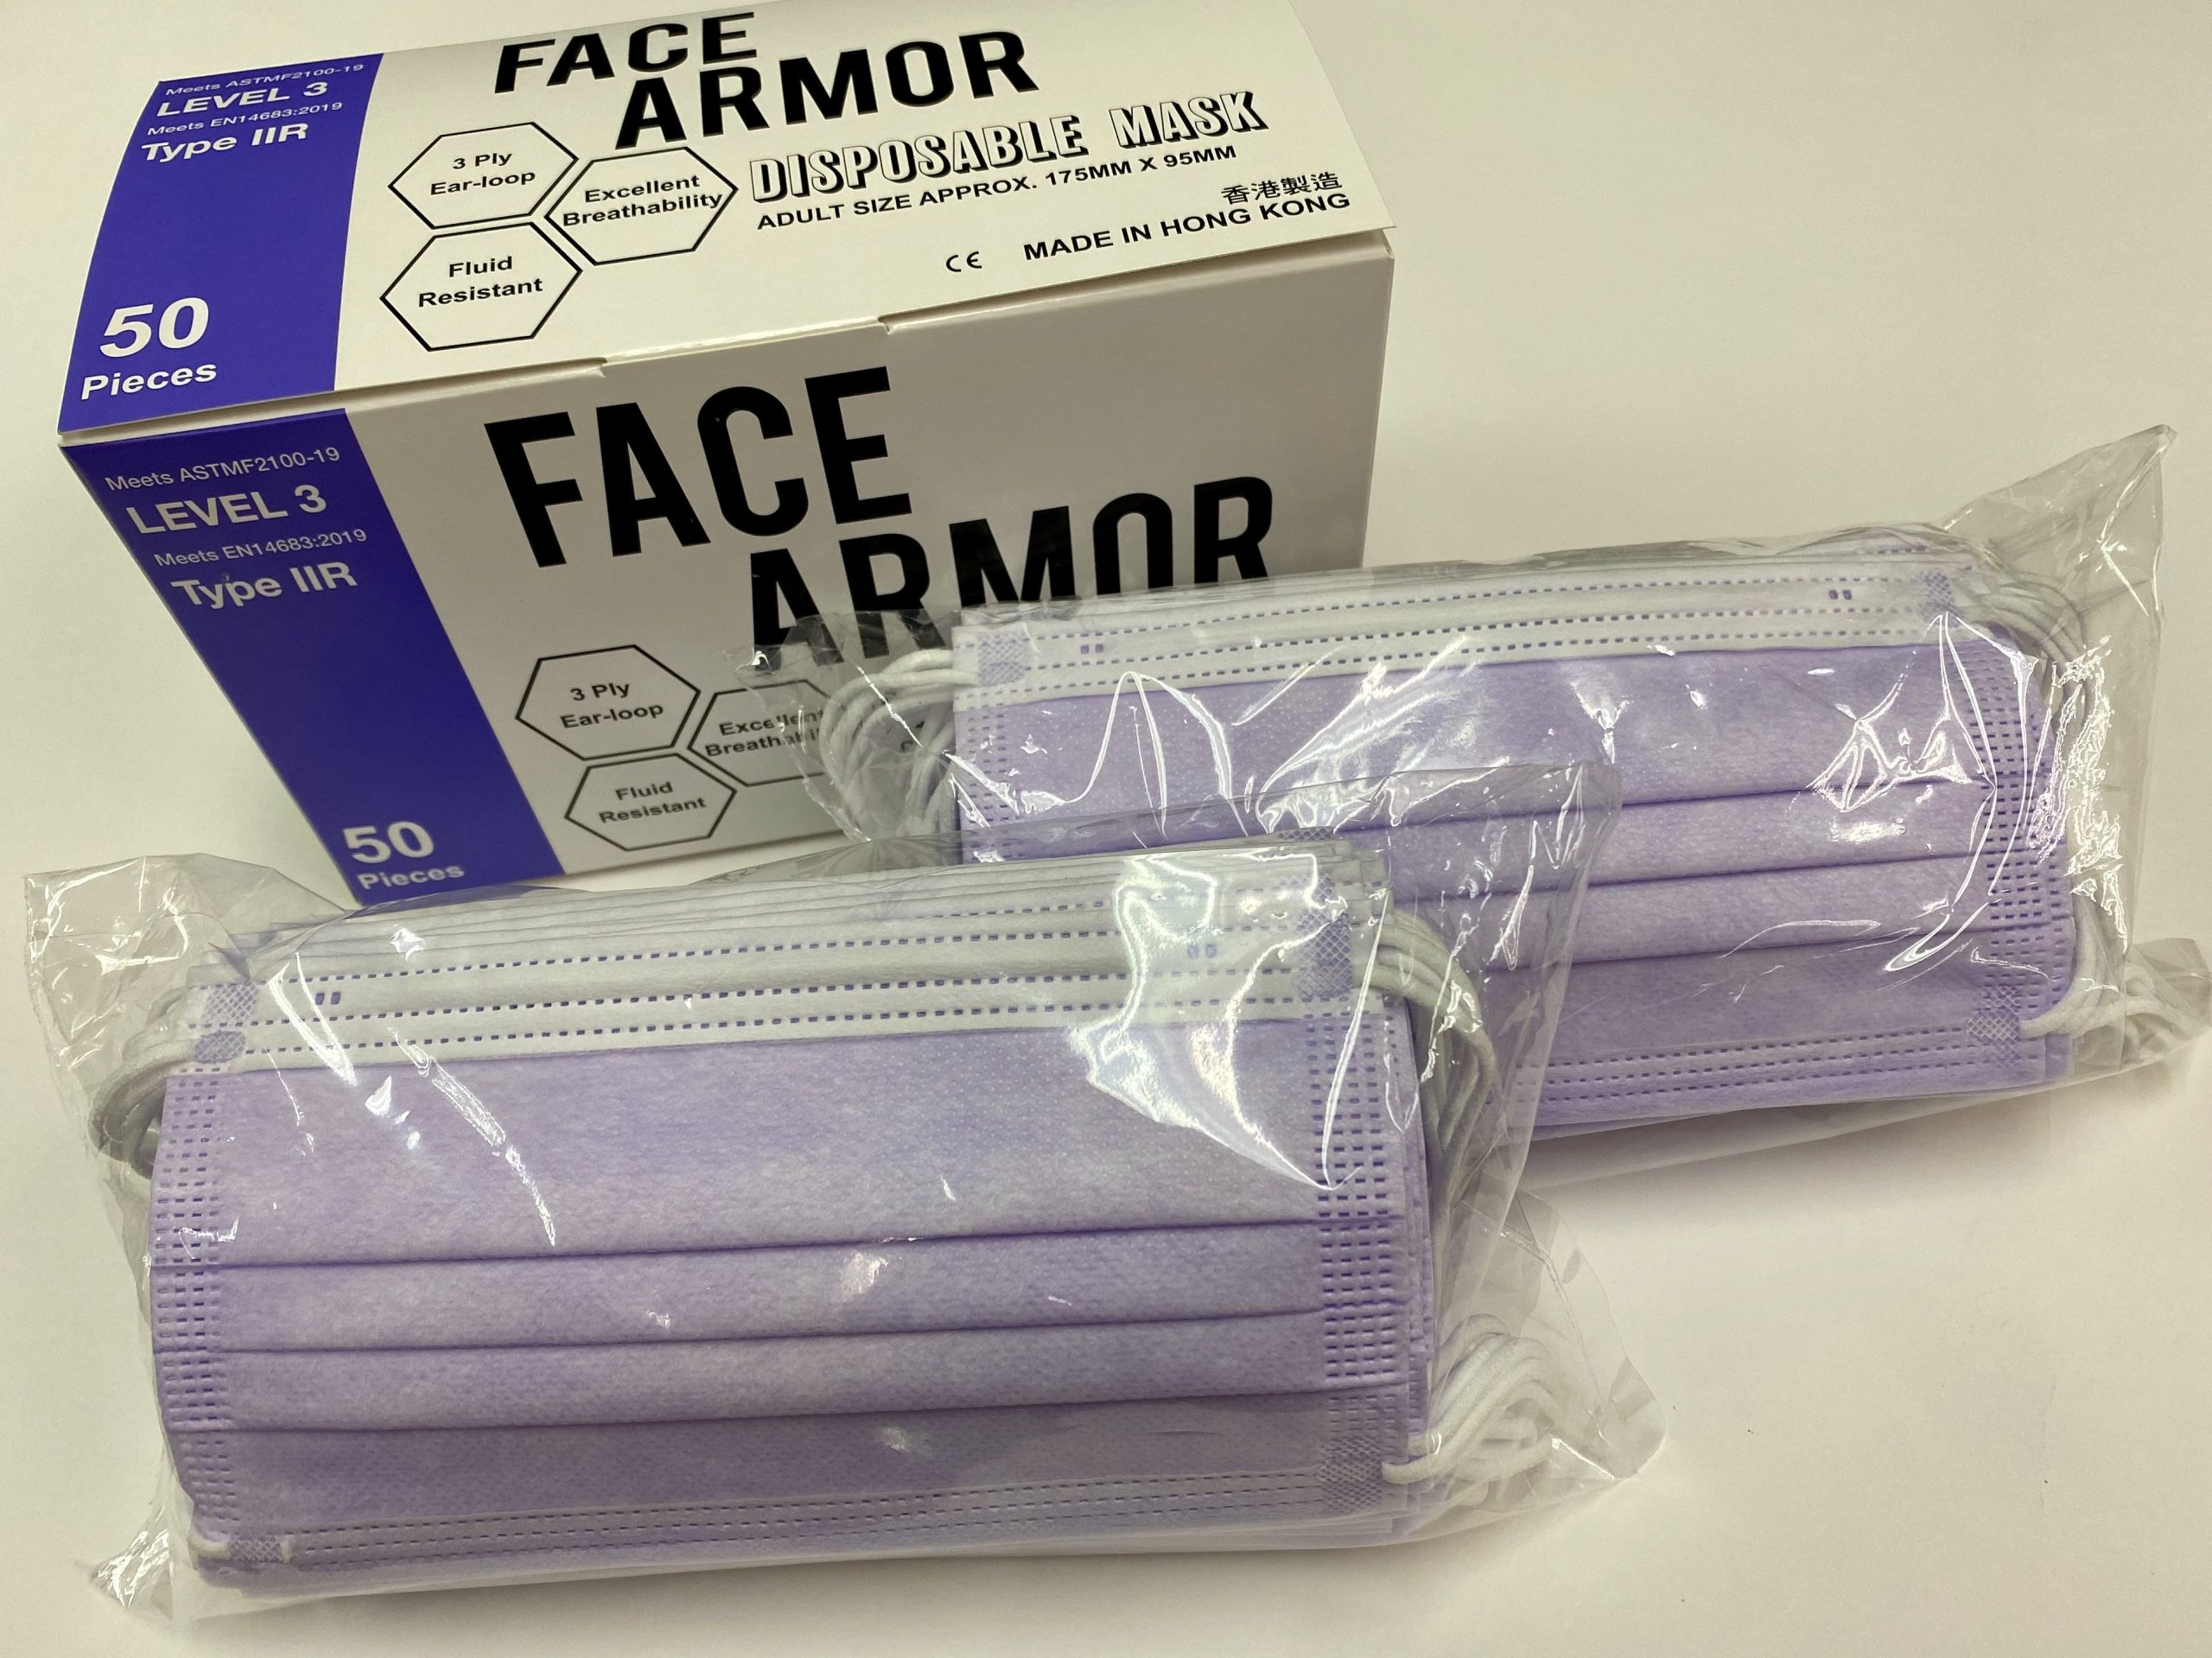 Face Armor Disposable Masks | ASTM LEVEL 3 | Made in Hong Kong| 50 PIECES | LIGHT PURPLE